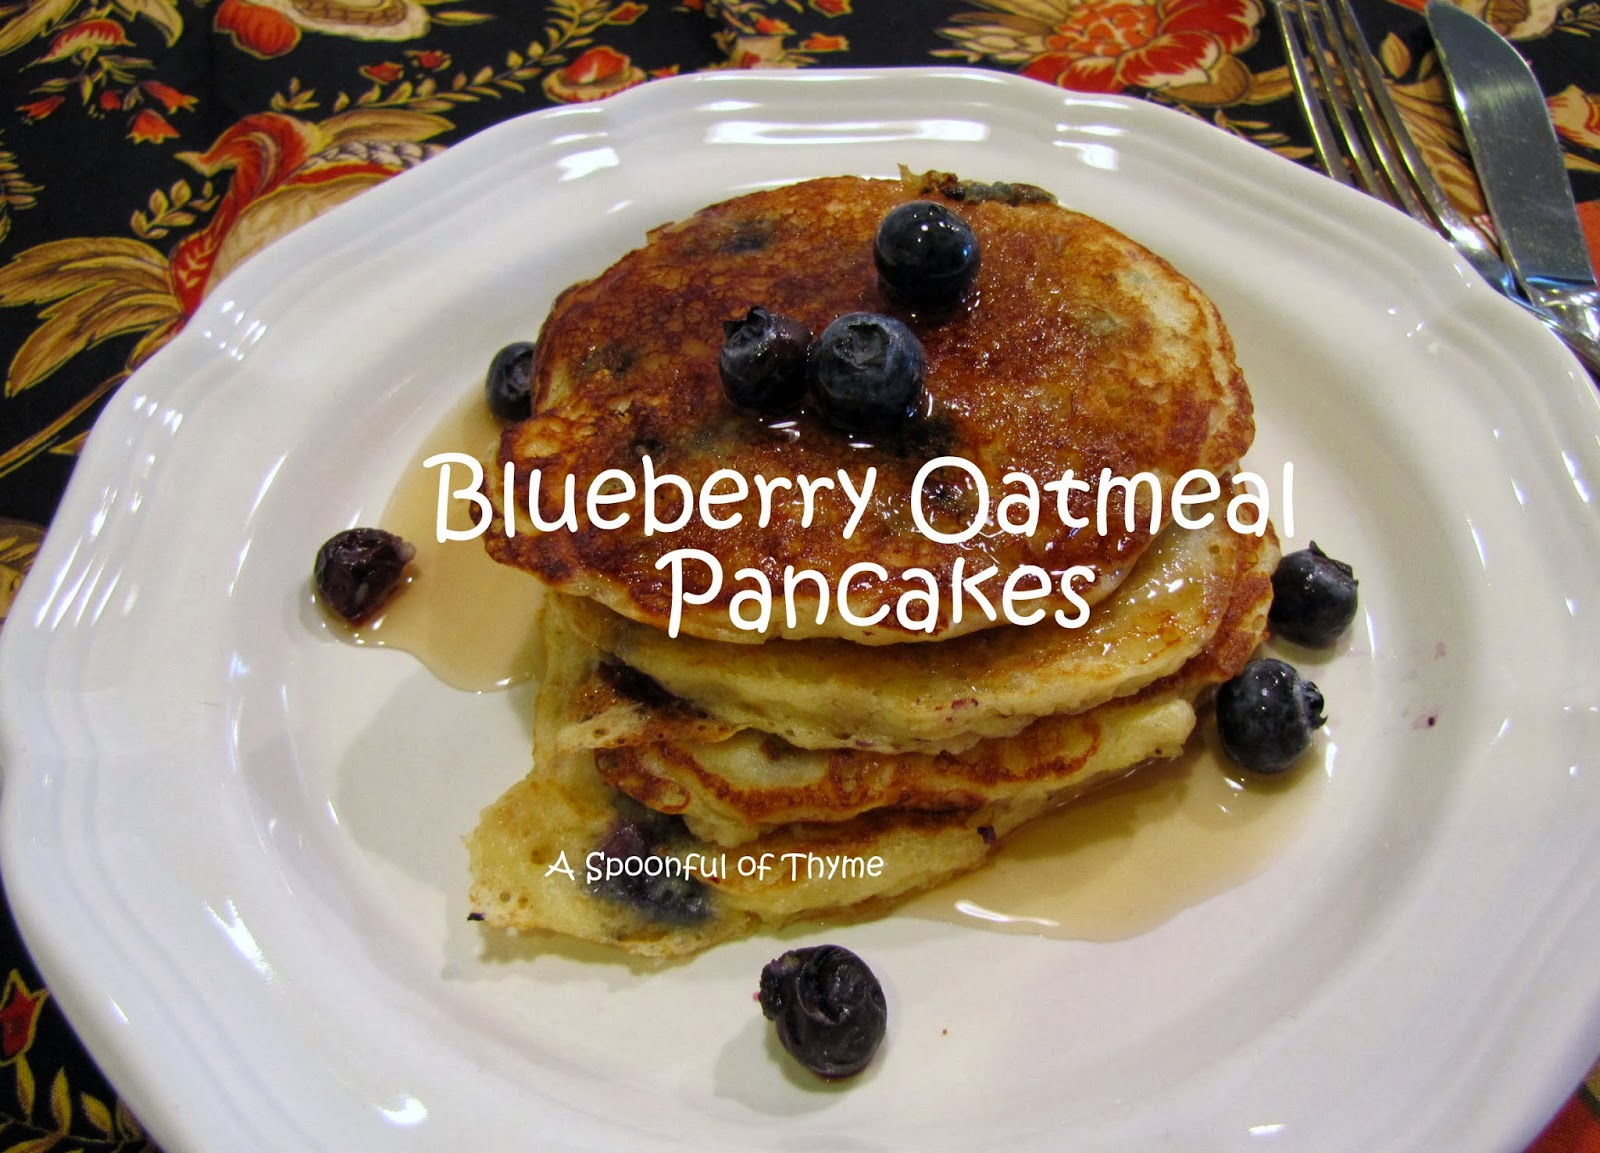 A Spoonful of Thyme: Blueberry Oatmeal Pancakes